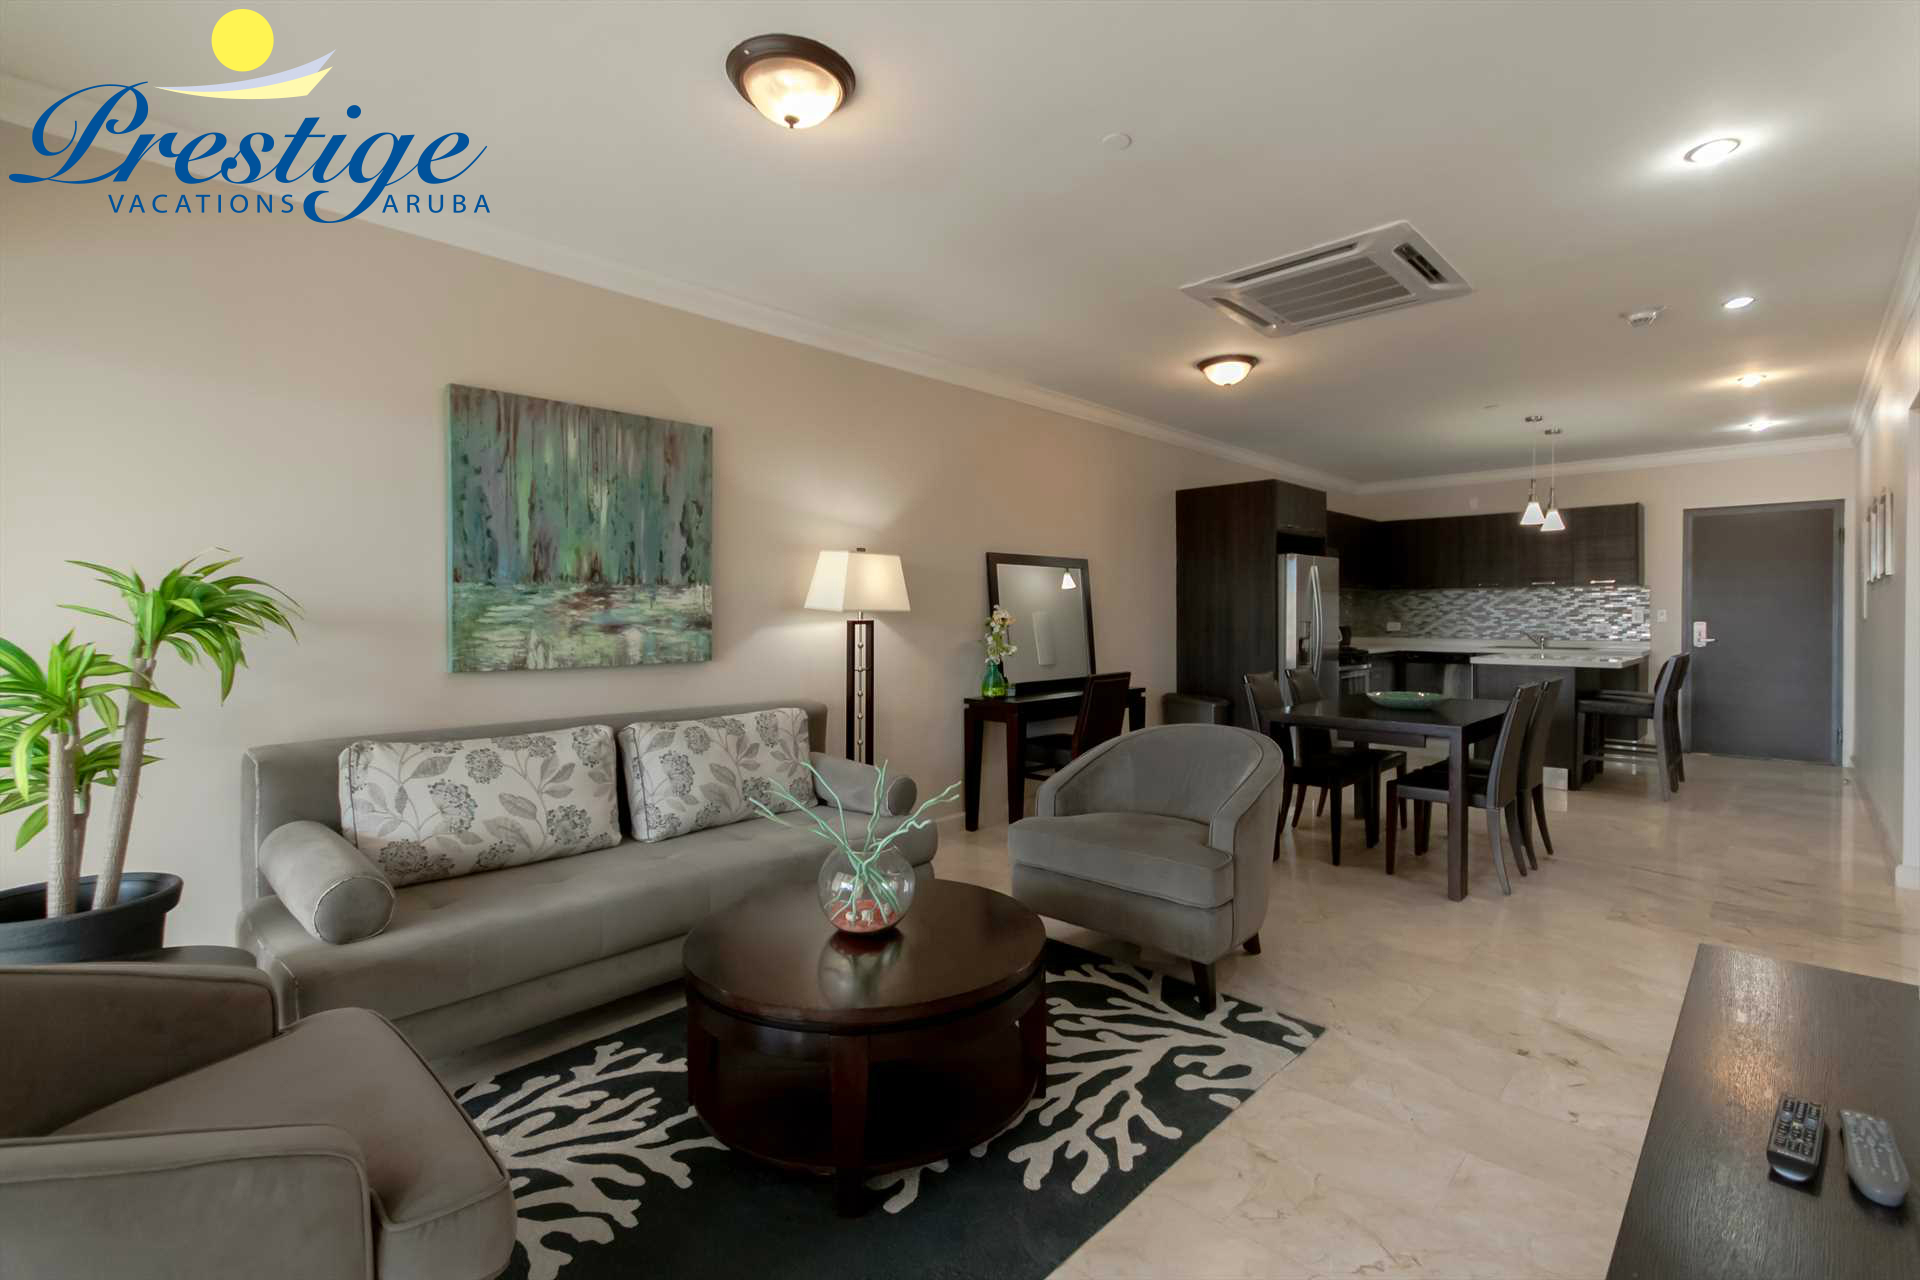 The open plan living area lets you feel right at home